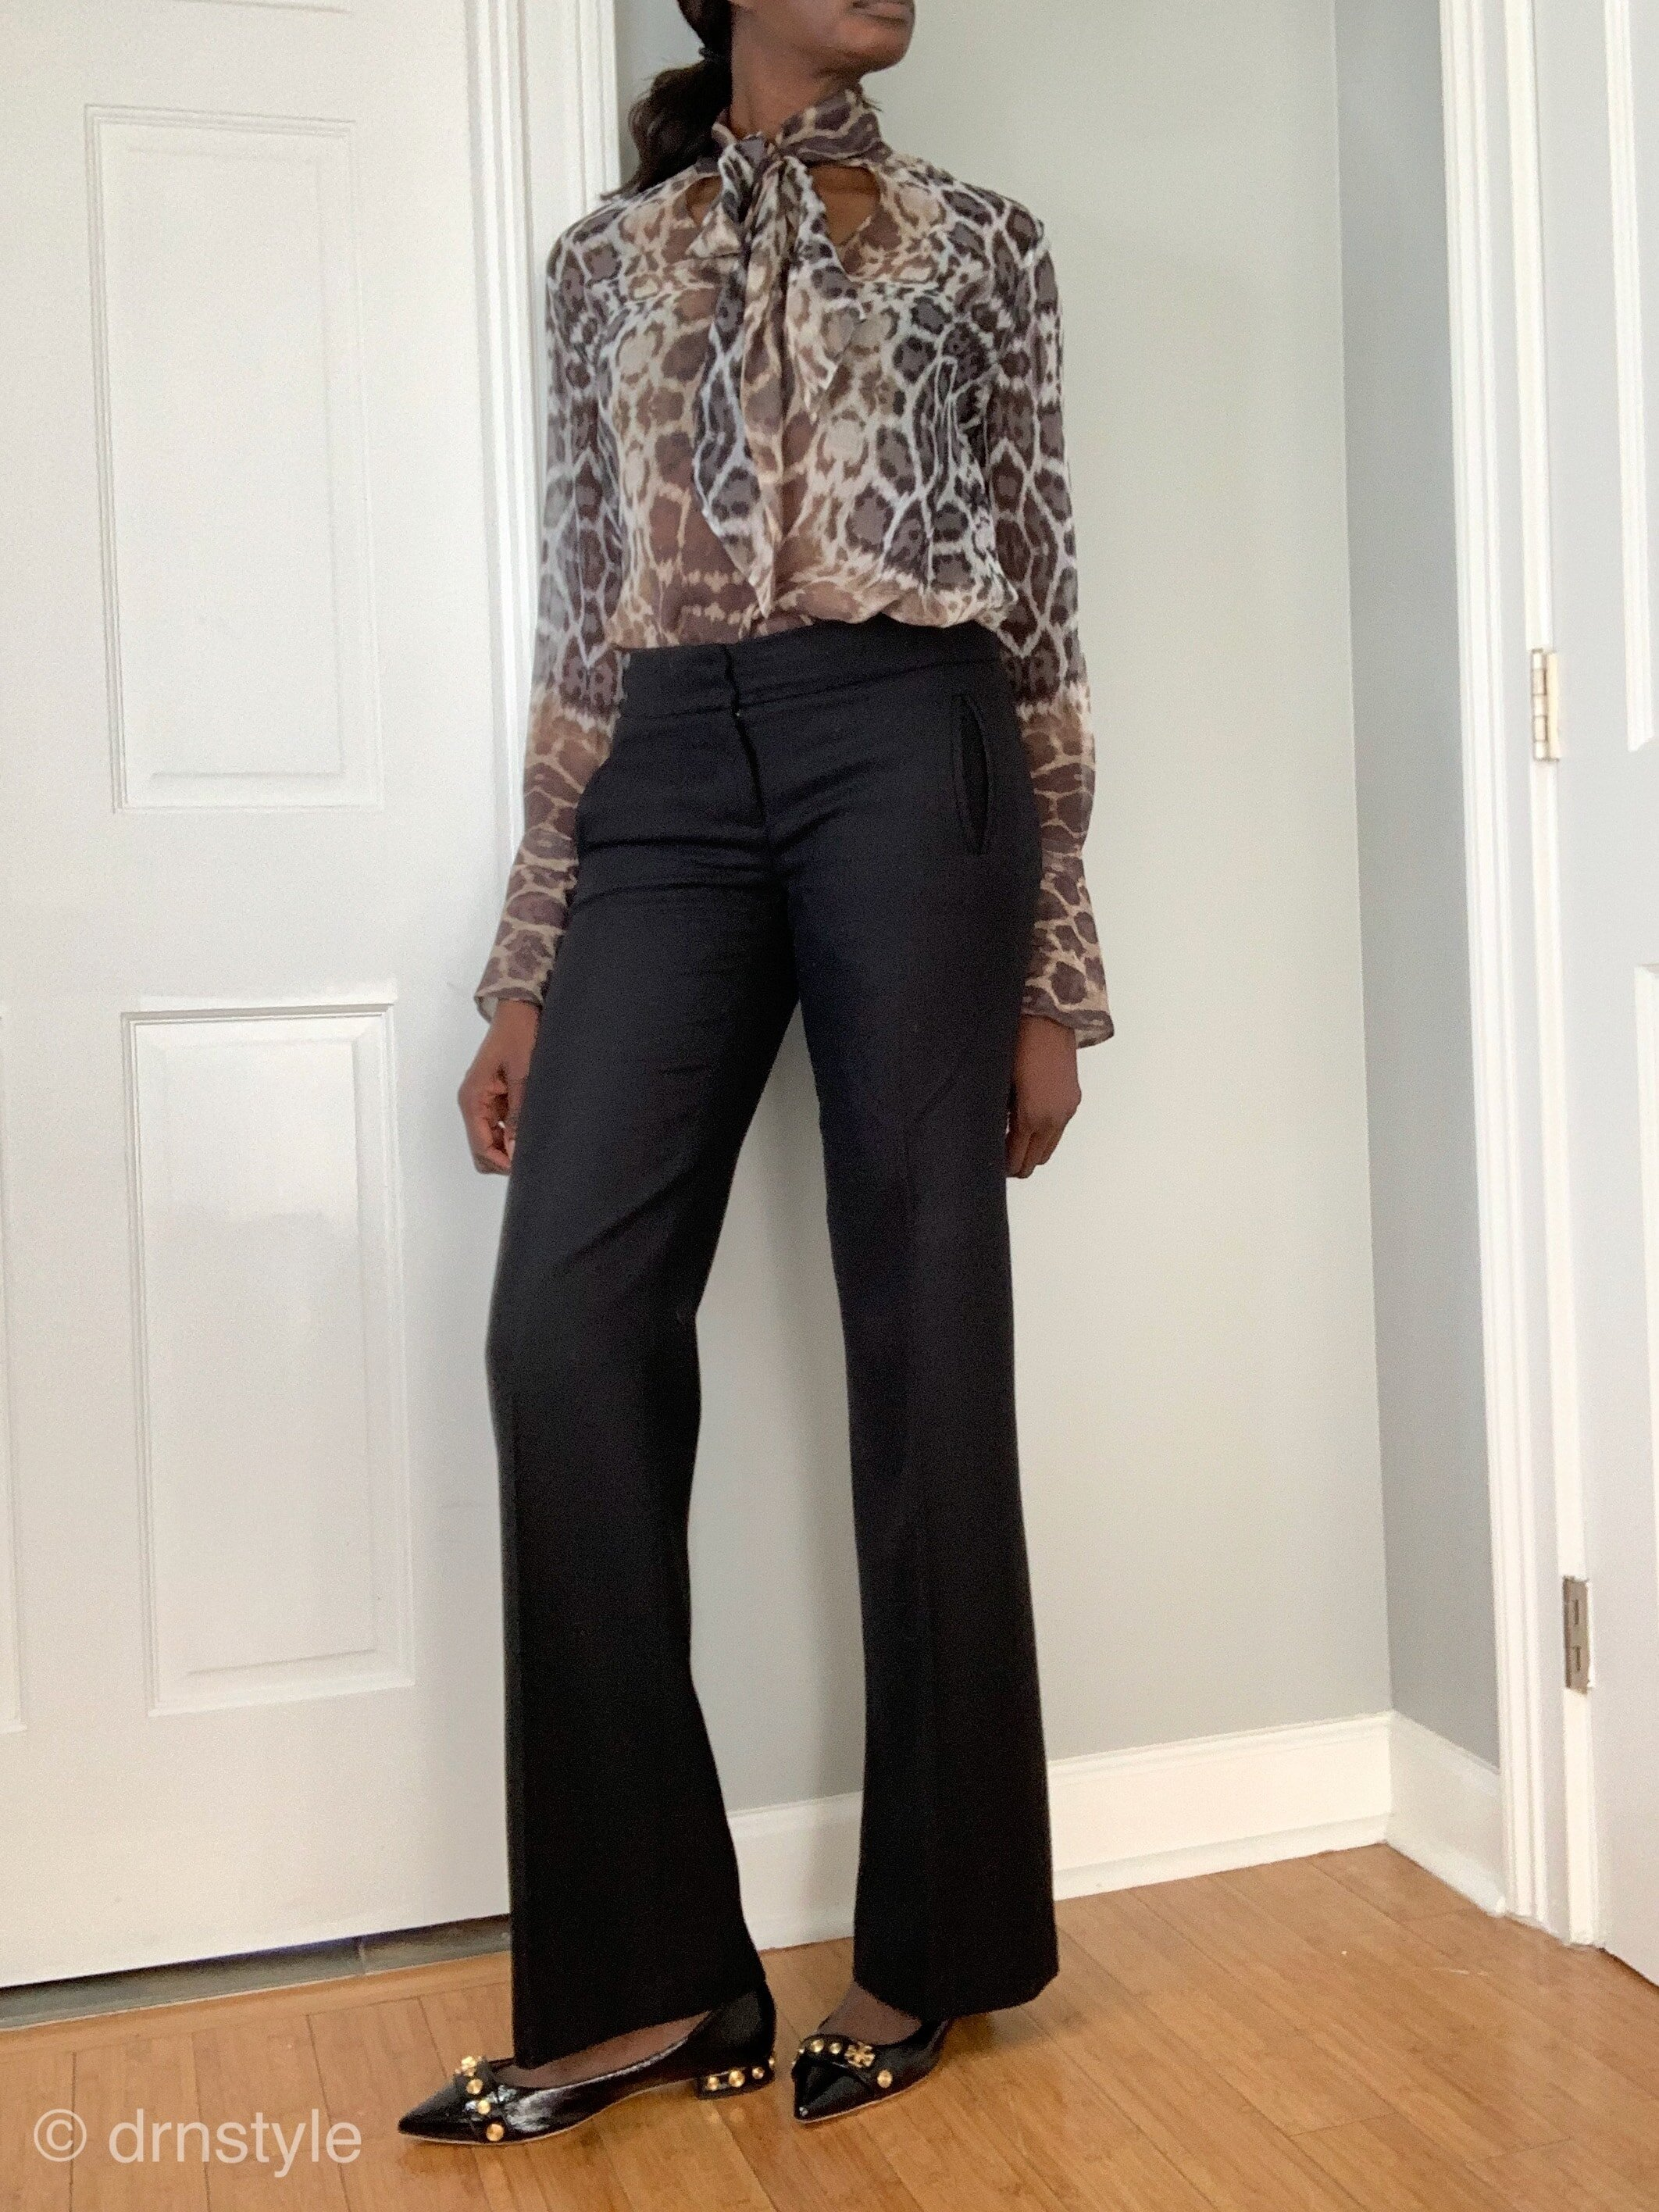 Leopard pring tops can be worn in the work environment in a tasteful, professional way.